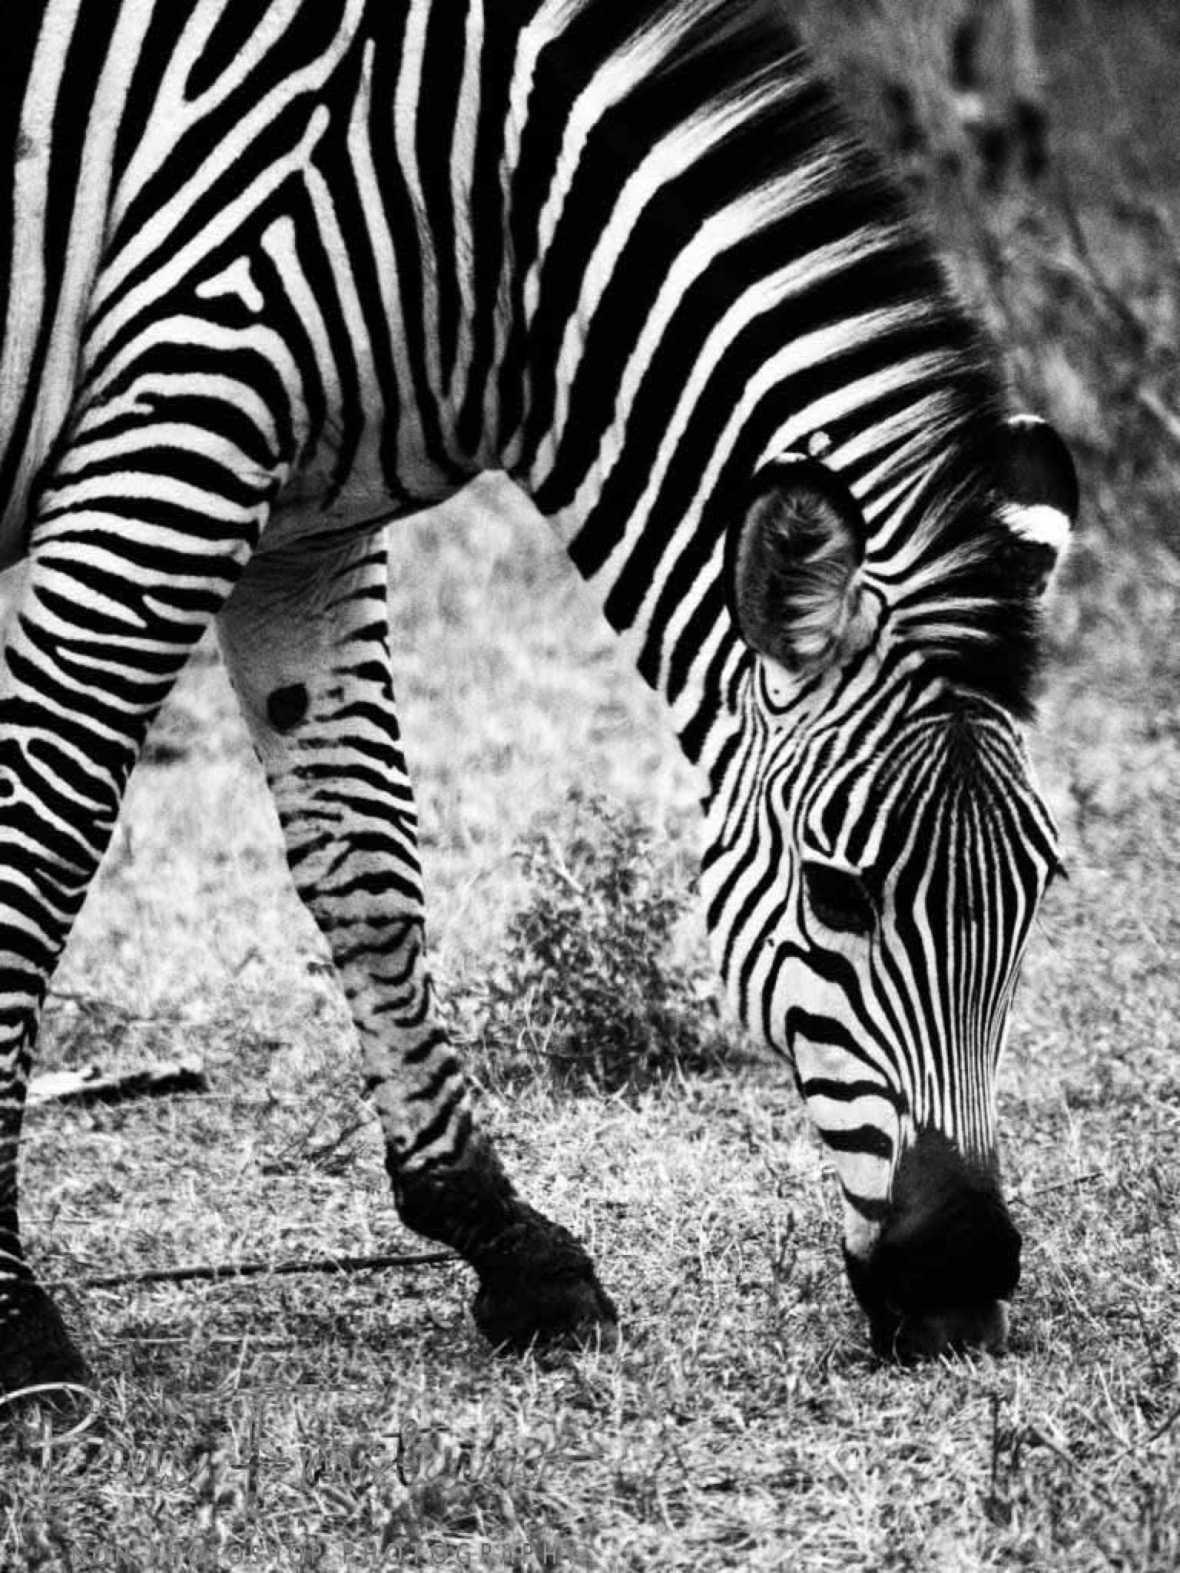 Grazing zebra in black and white, South Luangwa National Park, Zambia